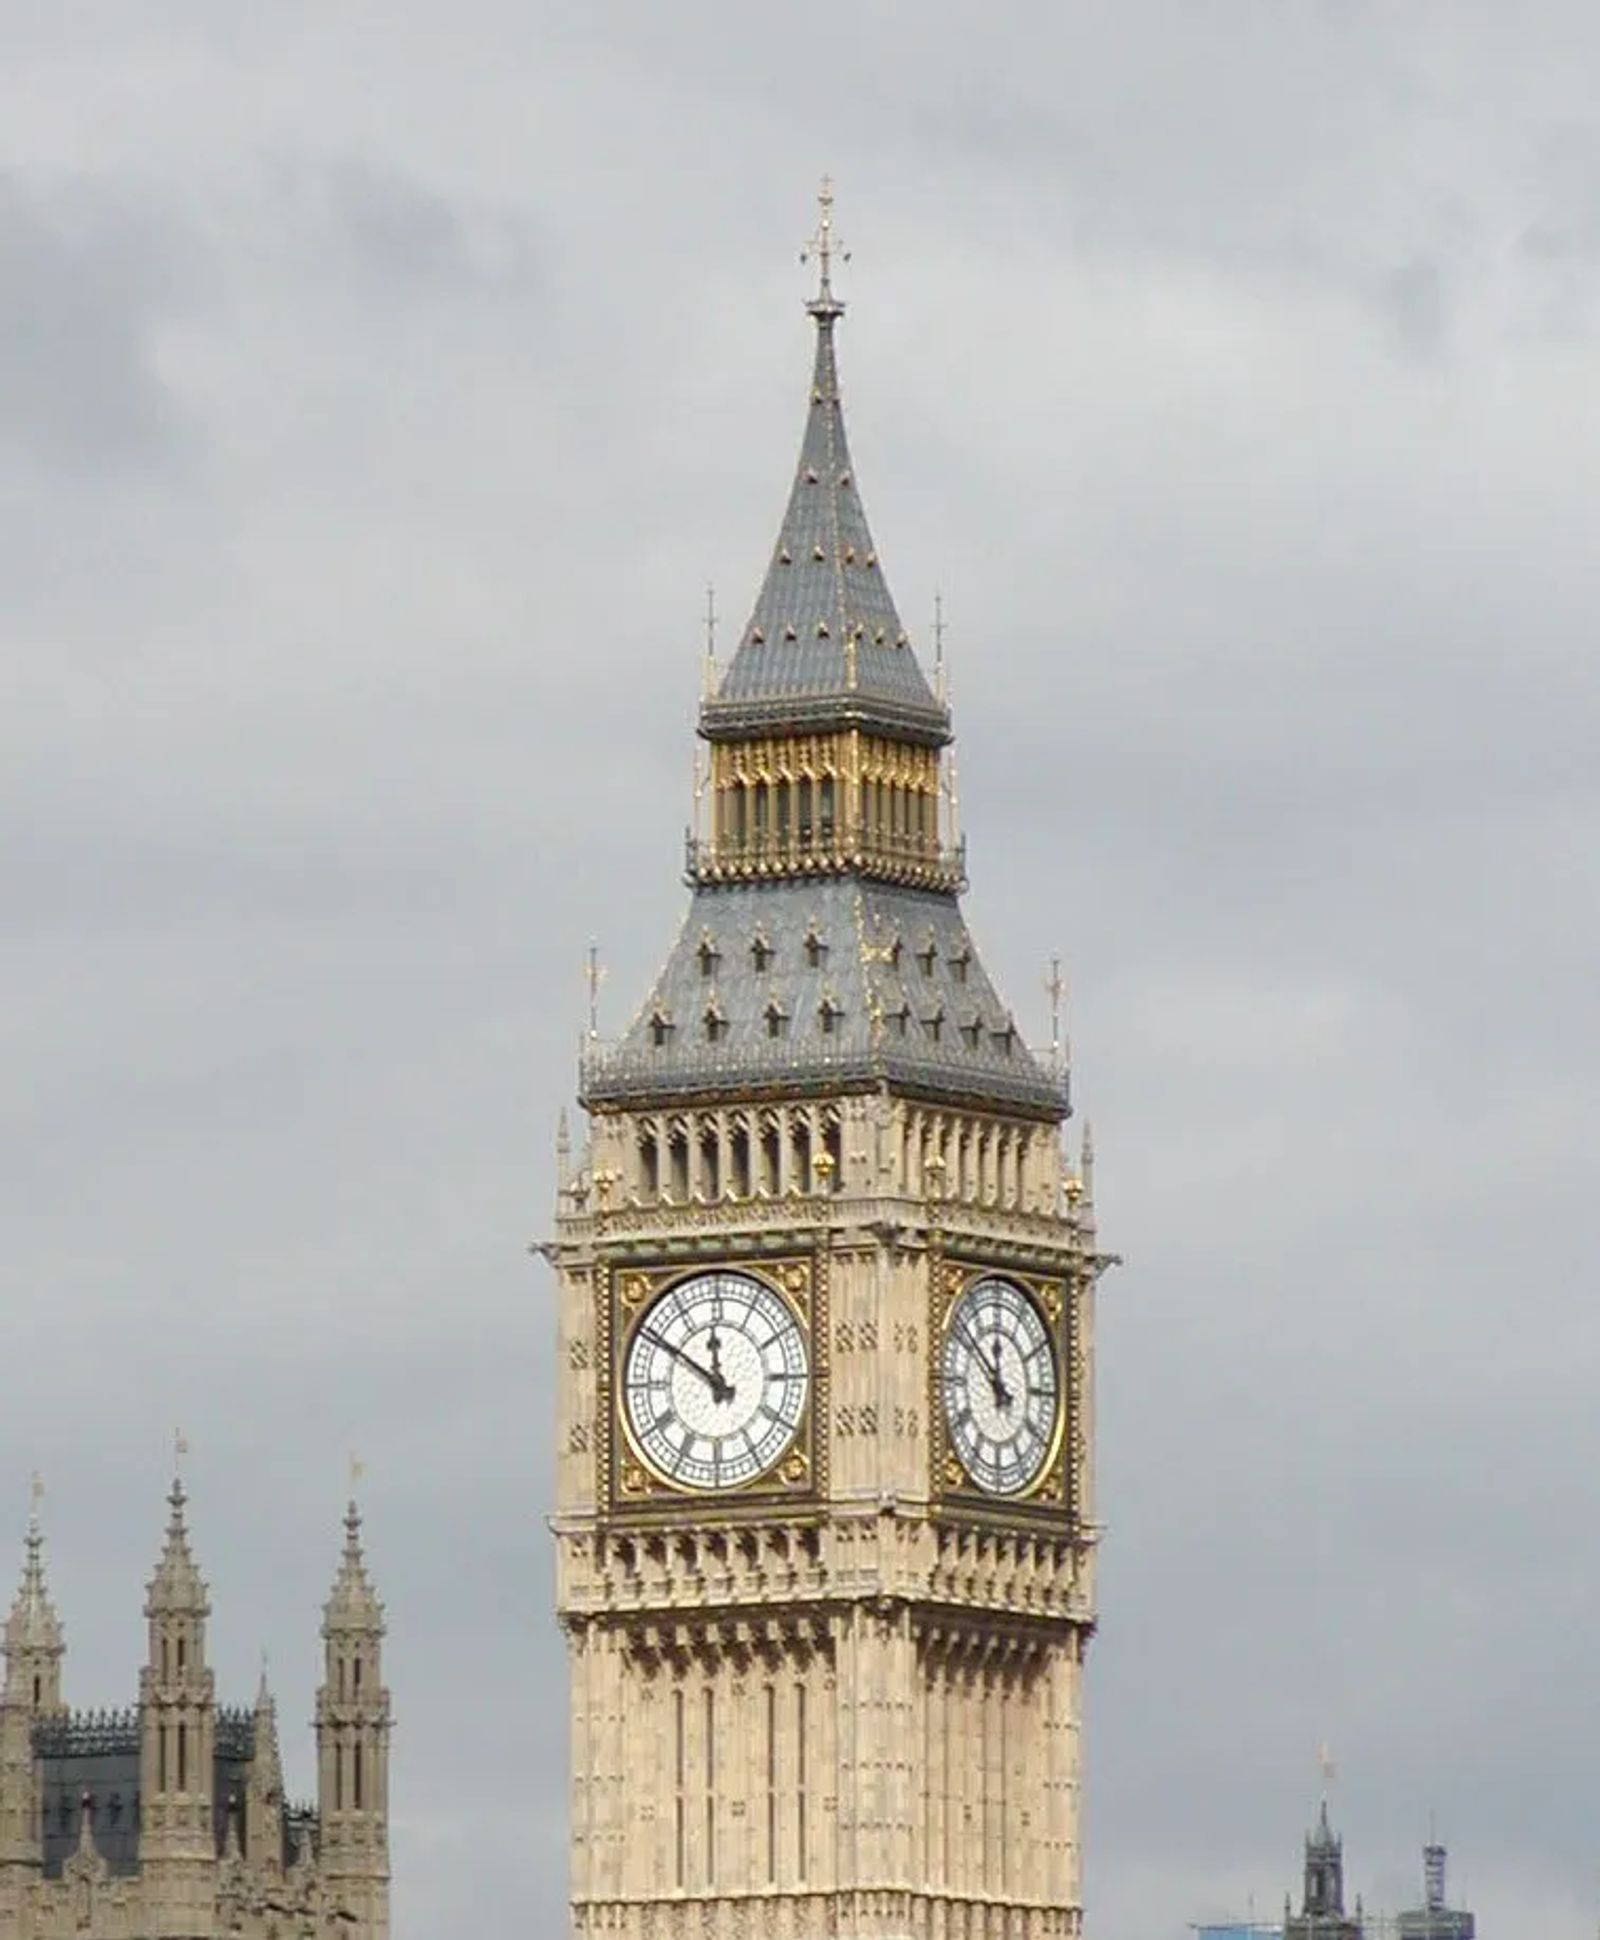 Photo of the Big Ben clock tower in London, England